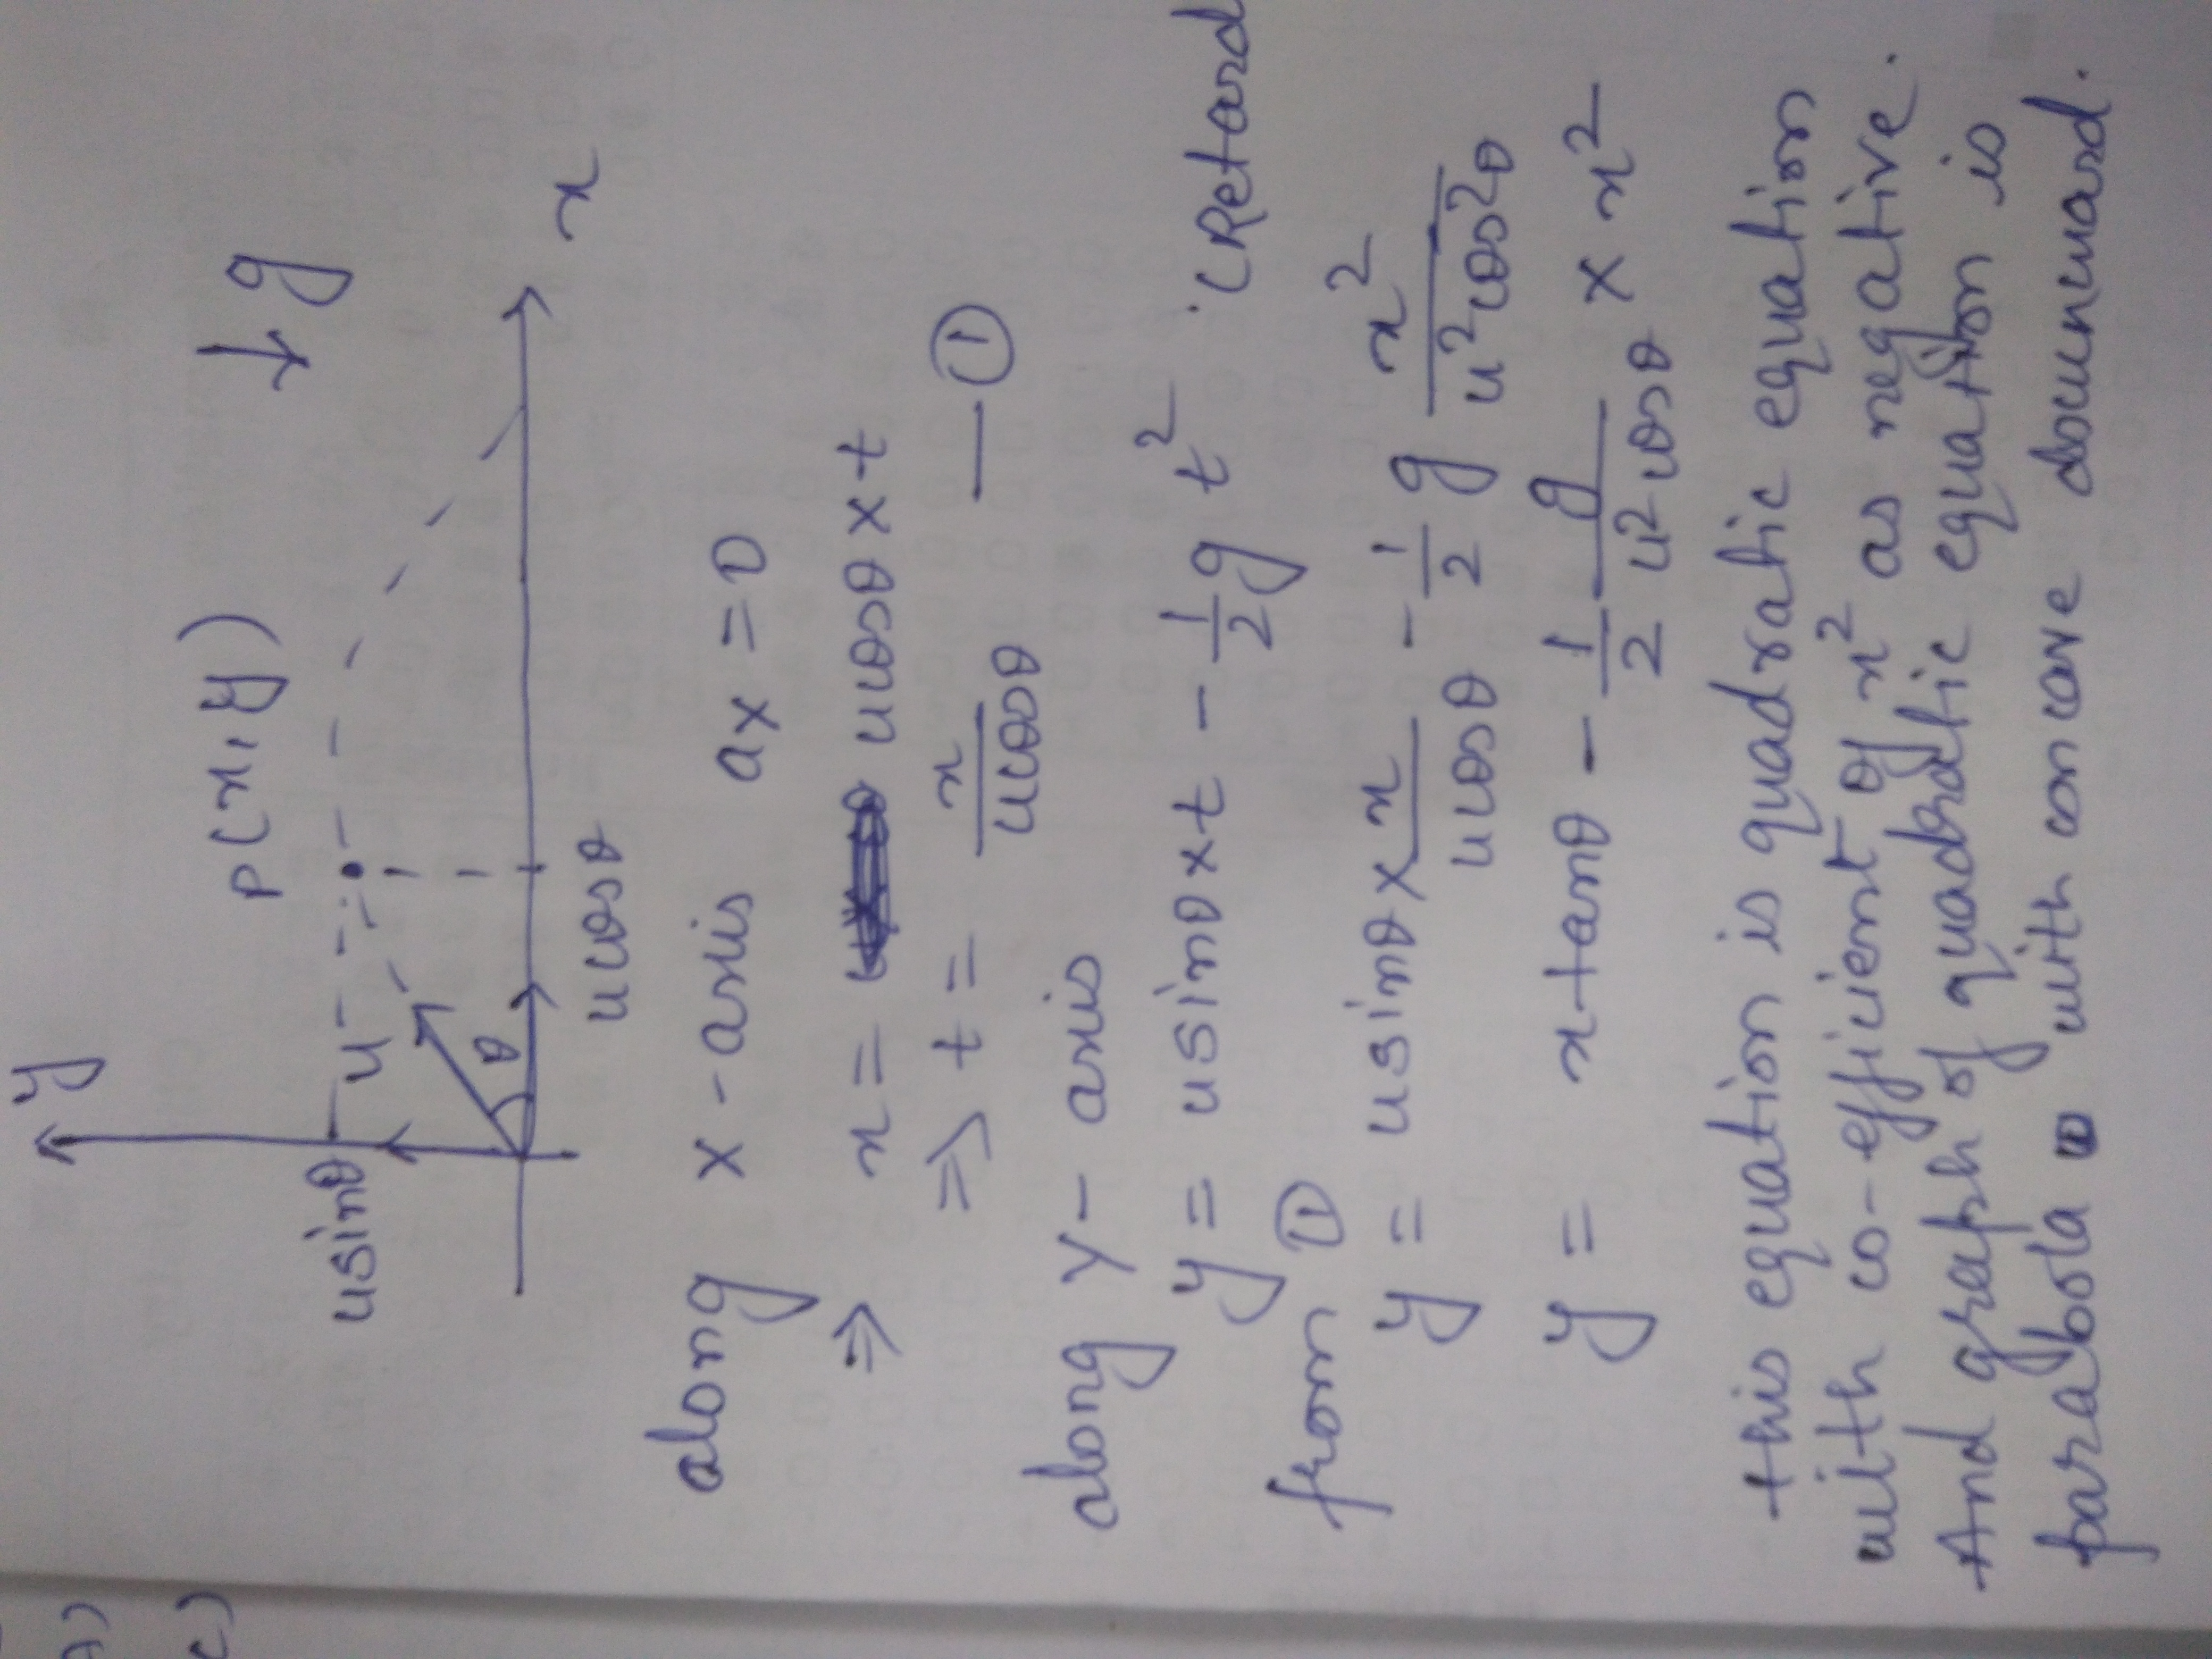 Prove That The Path Of An Oblique Projectile Is Parabola